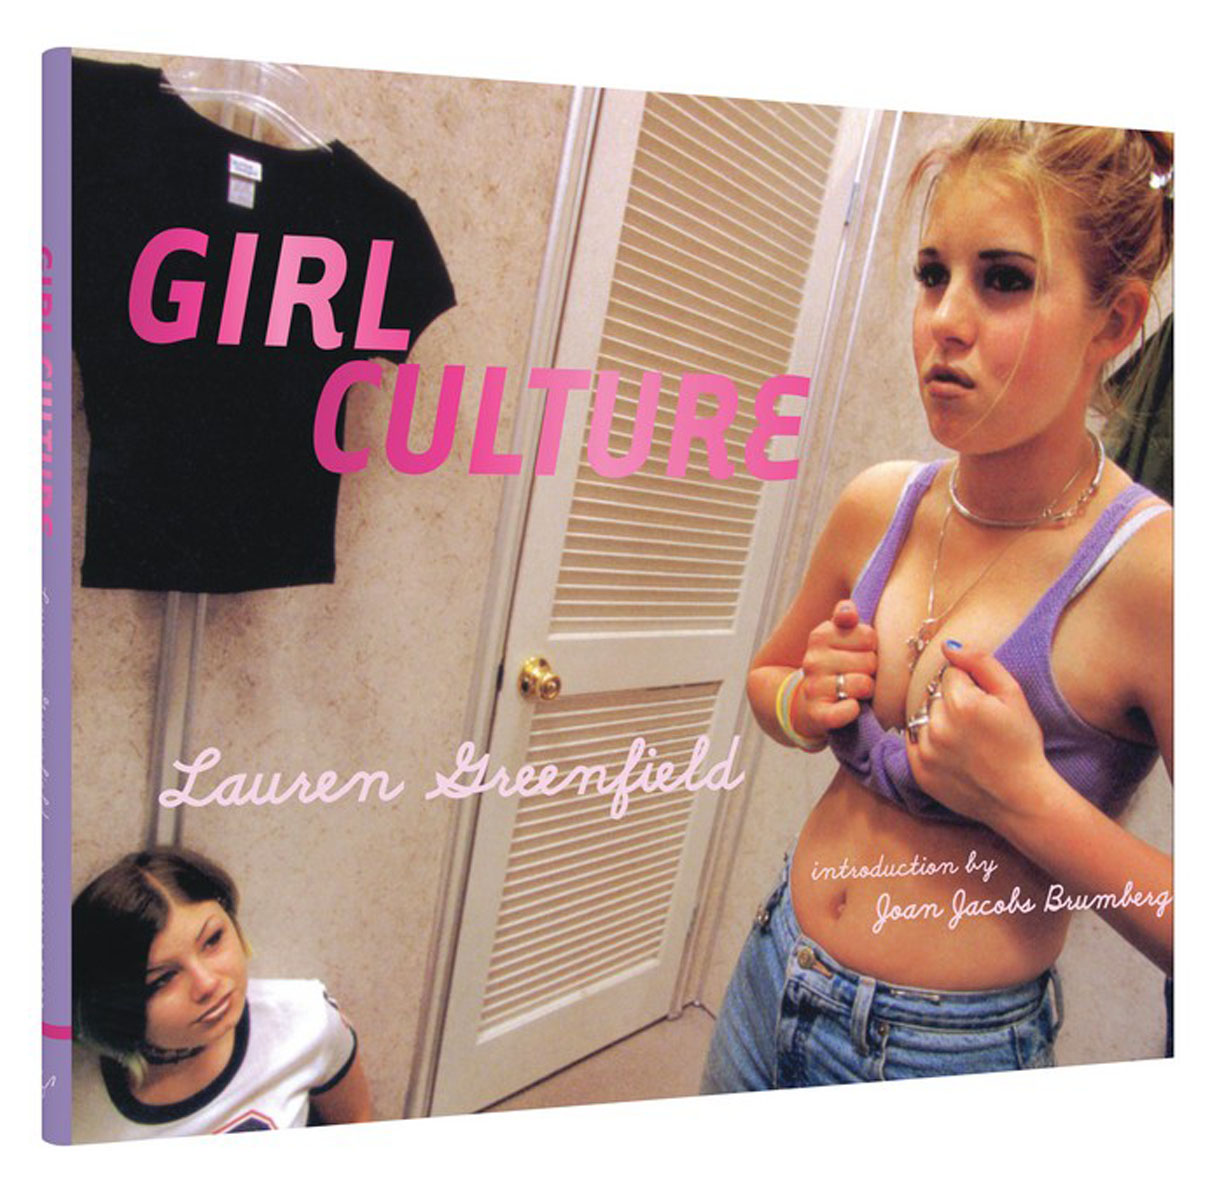 Girl Culture photographs from the american southwest